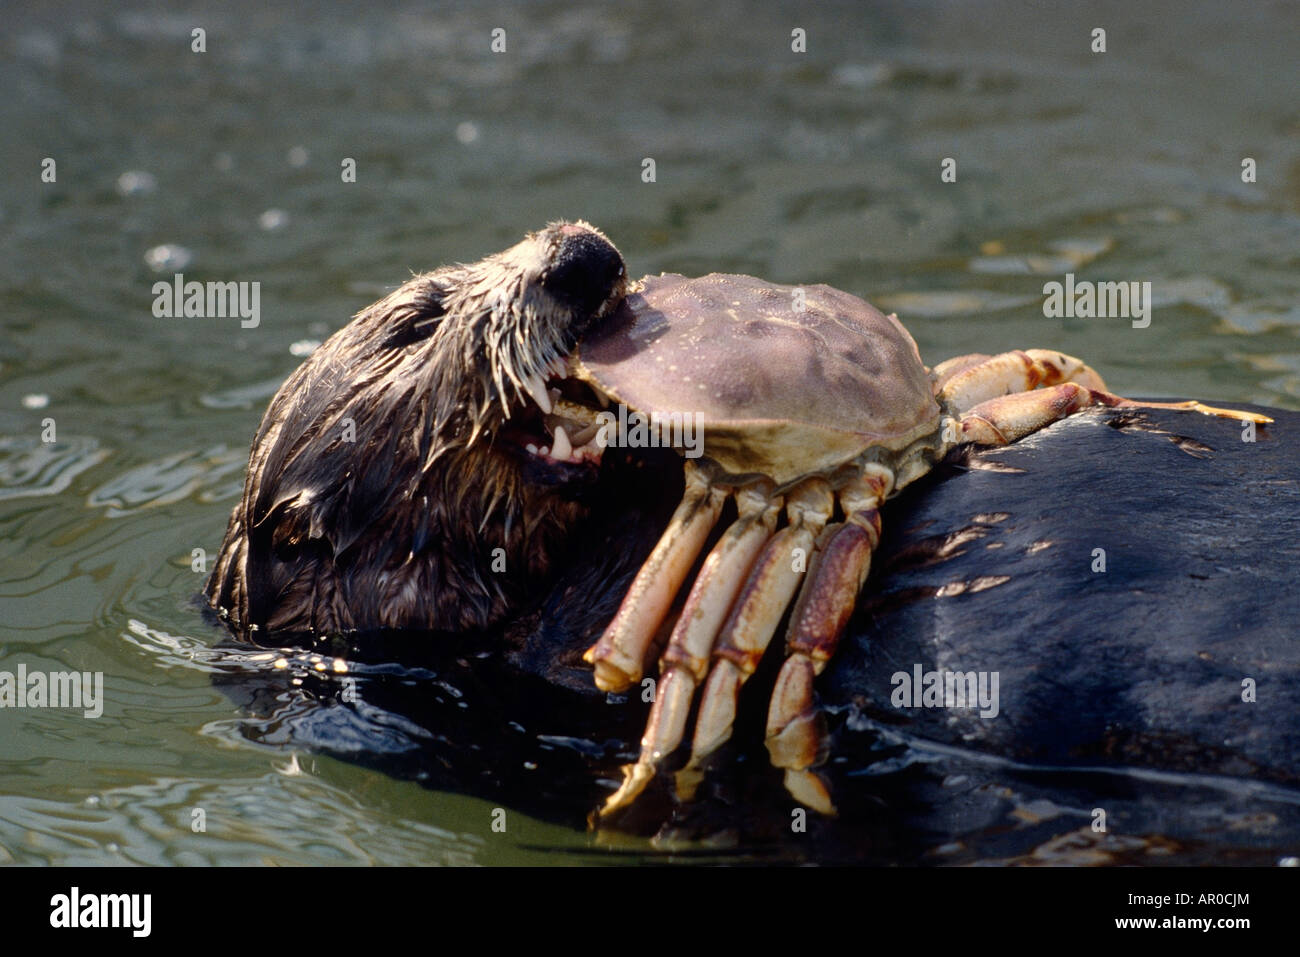 Sea Otter Eating a Crab While Swimming on Back AK/nRecovering From ...